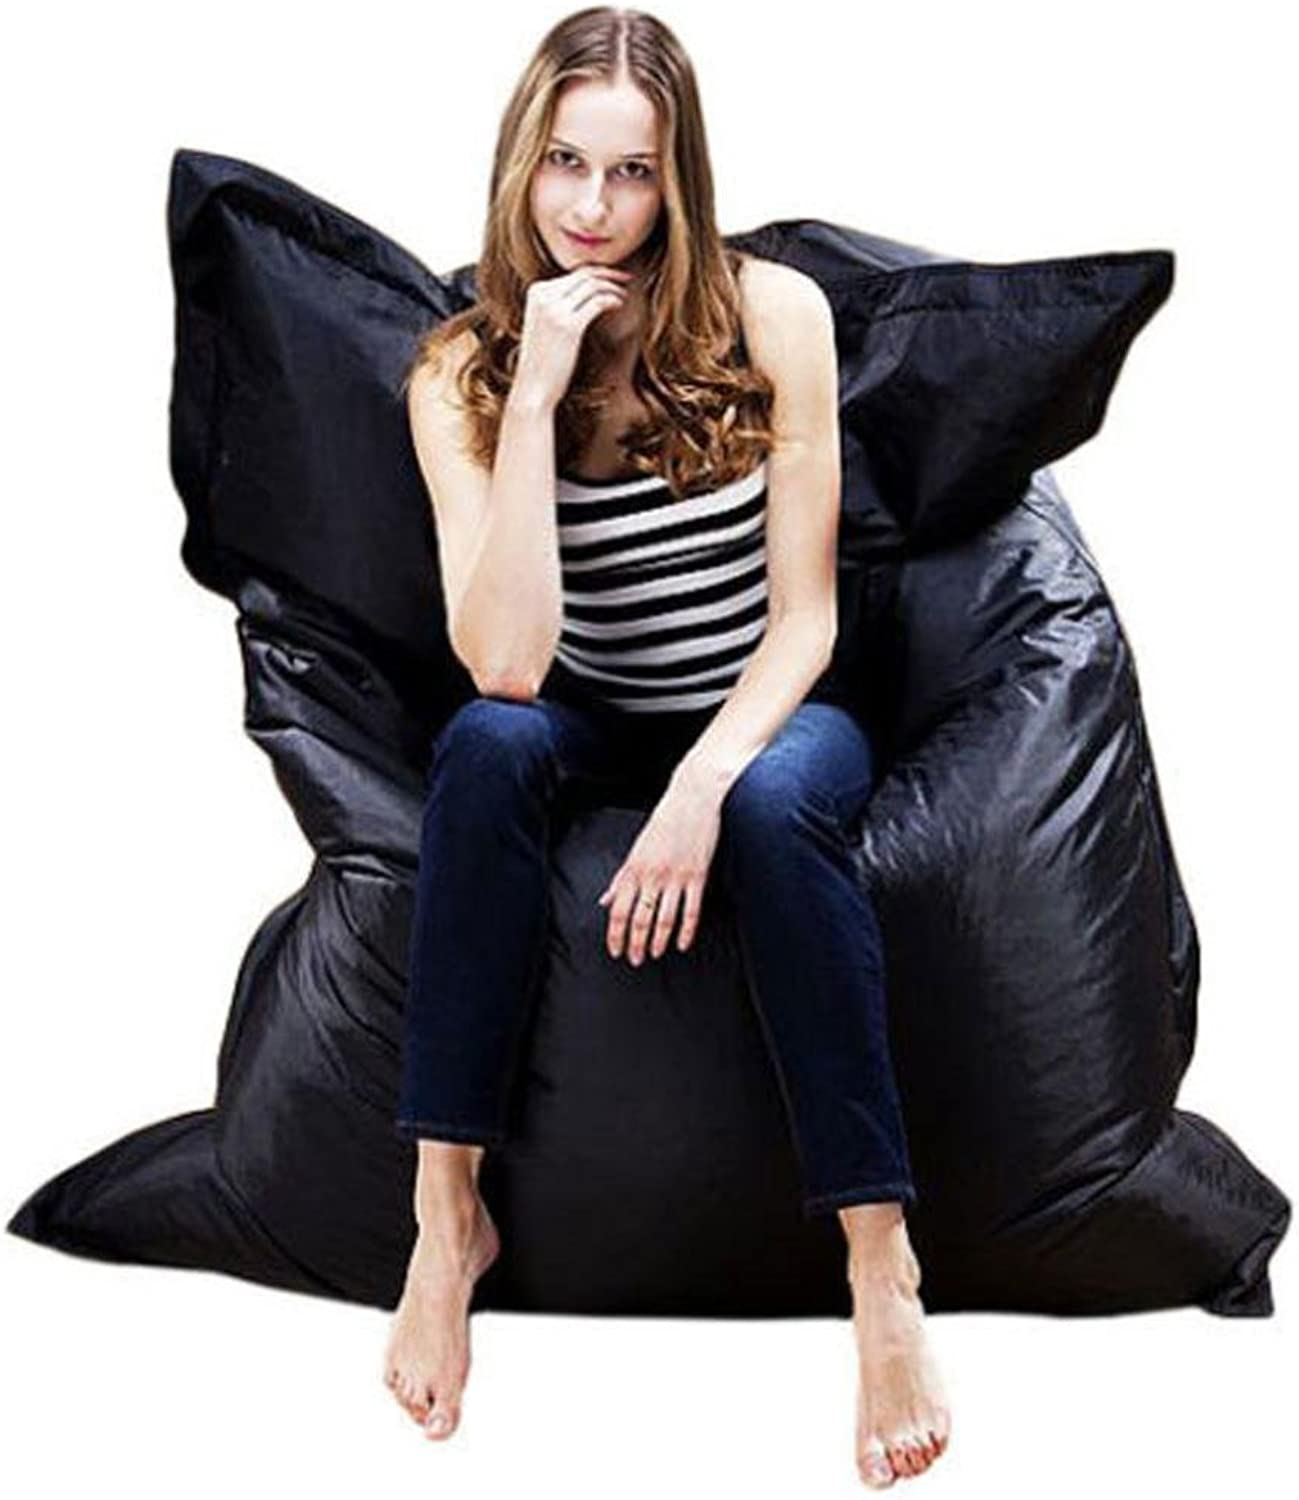 Mchoice Giant Beanbag Cushion Pillow Indoor Outdoor Relax Gaming Gamer Bean Bag (Black)